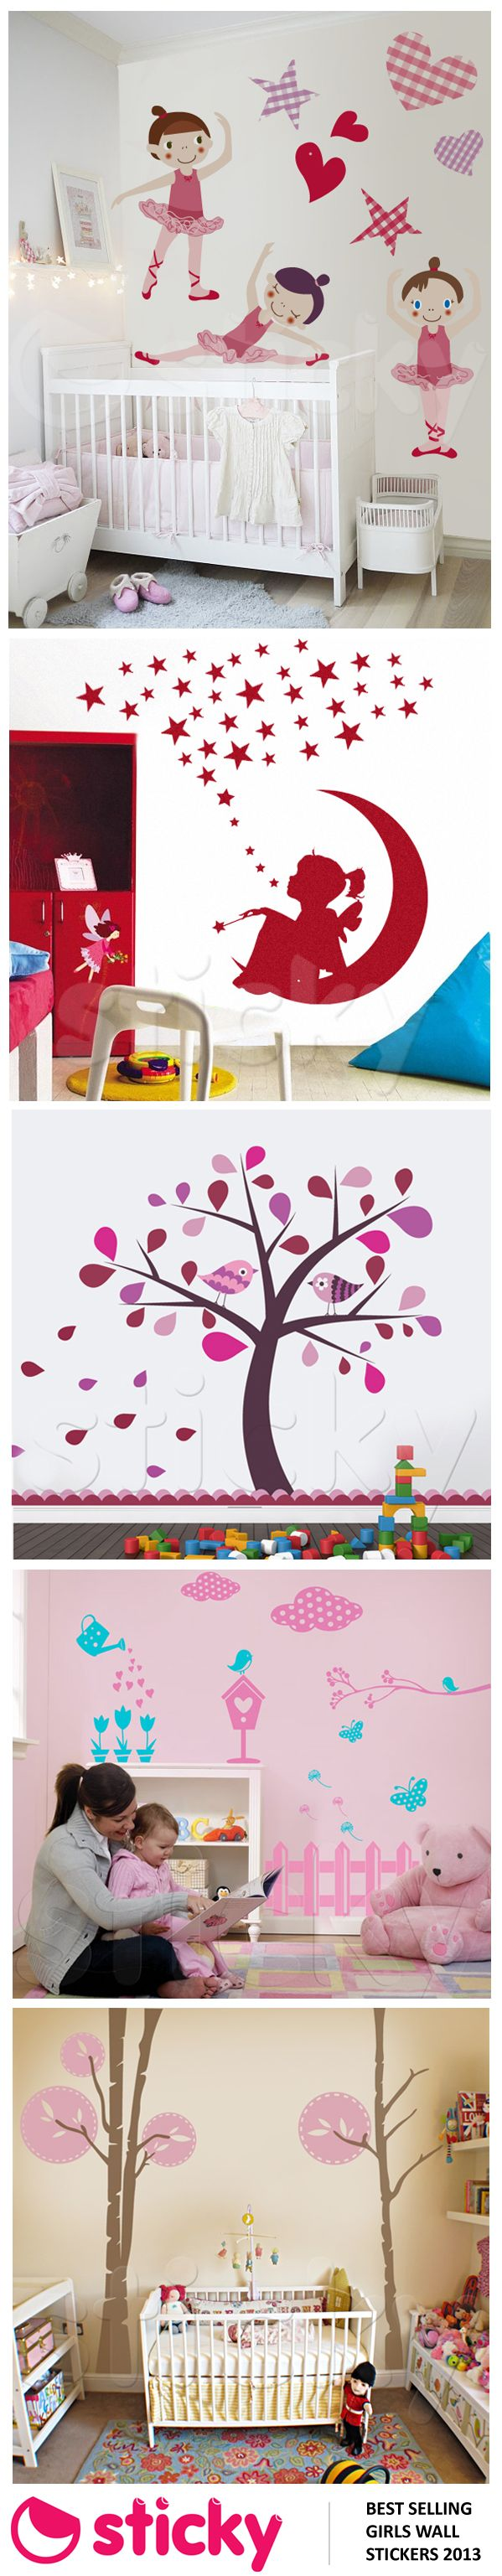 STICKY - Our best selling girl's room wall stickers for 2013 based on sales!